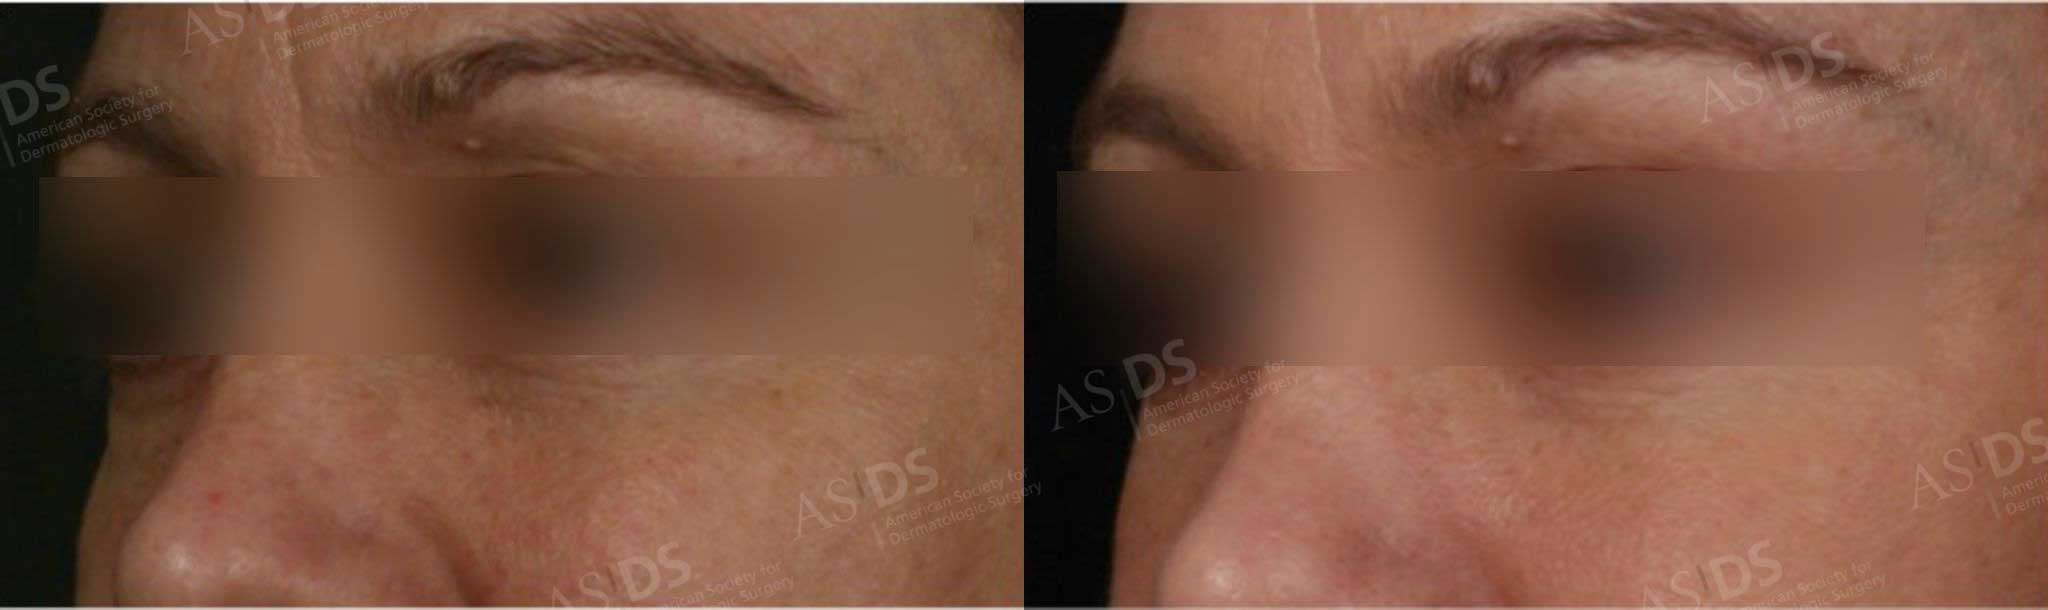 Before (left) and after (right) Botox to glabella, IPL to skin, Restylane to tear troughs and outer eyebrow.